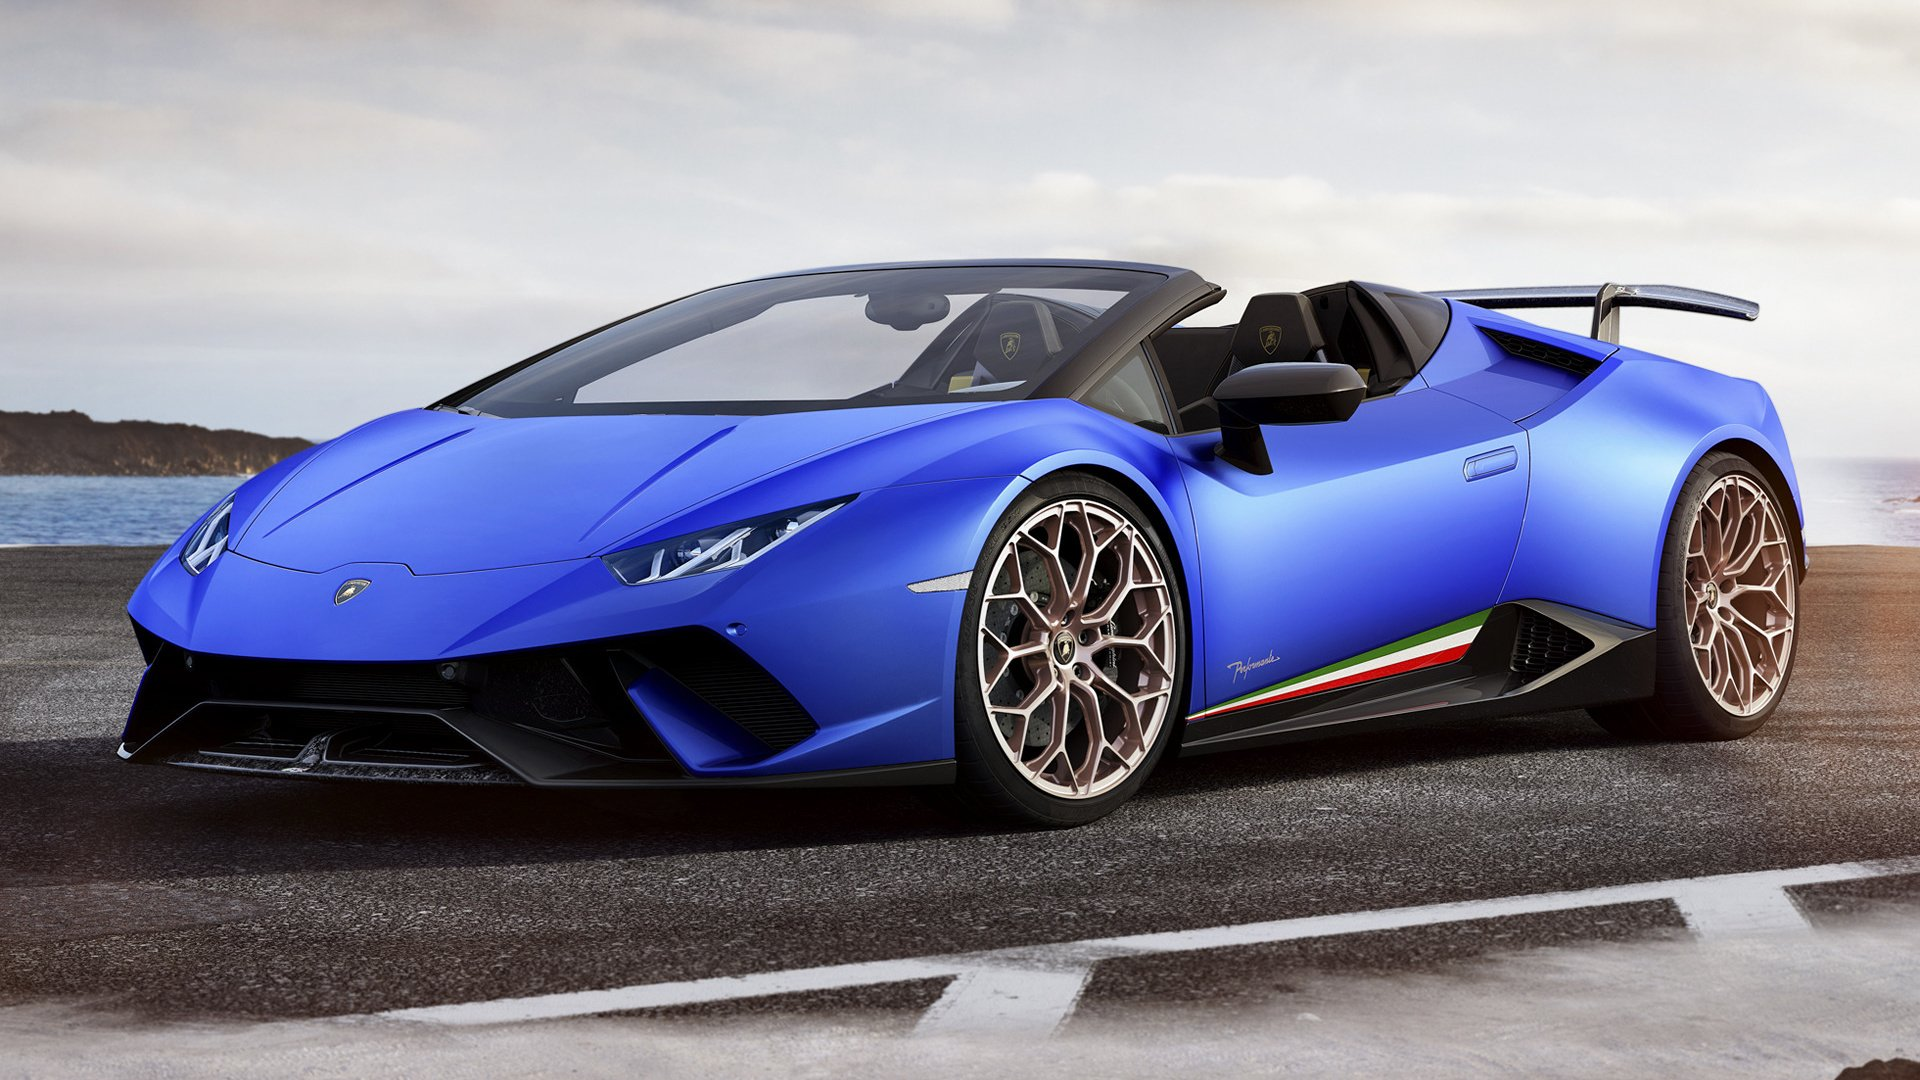 2018 Lamborghini Huracan Performante Spyder HD Wallpaper 1920x1080